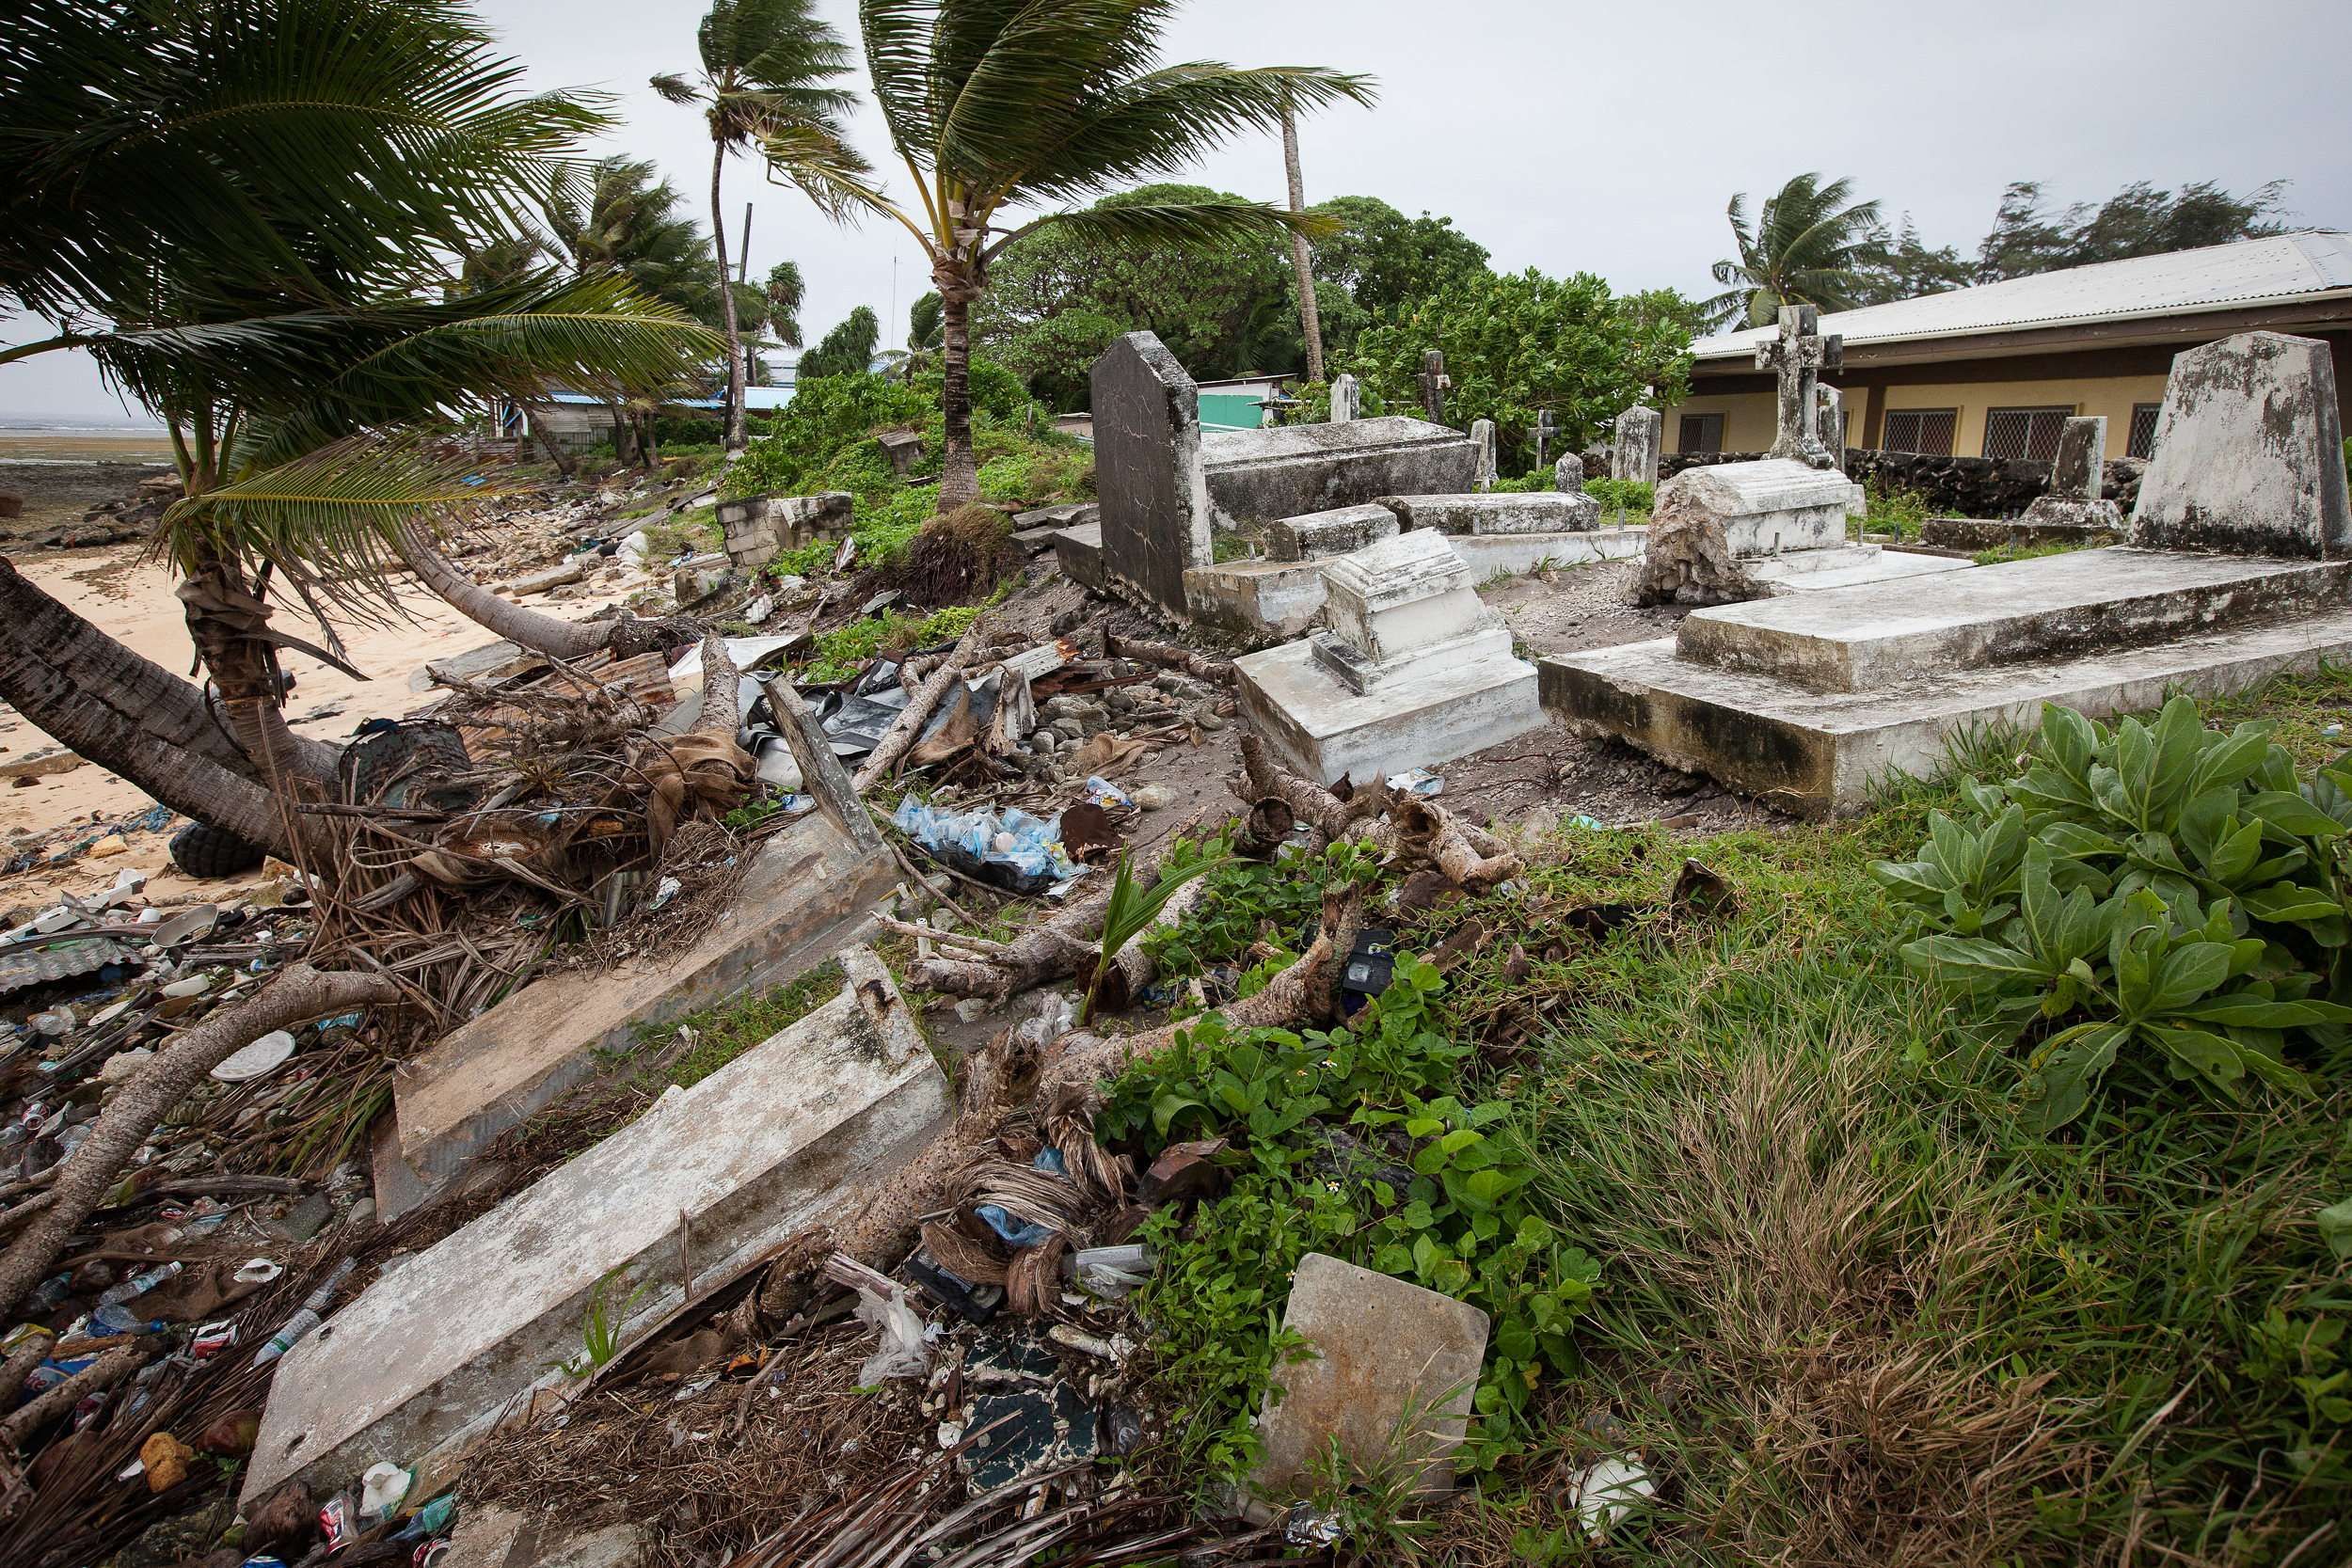 This graveyard in Uliga falls further down into the sea as each storm causes further erosion.